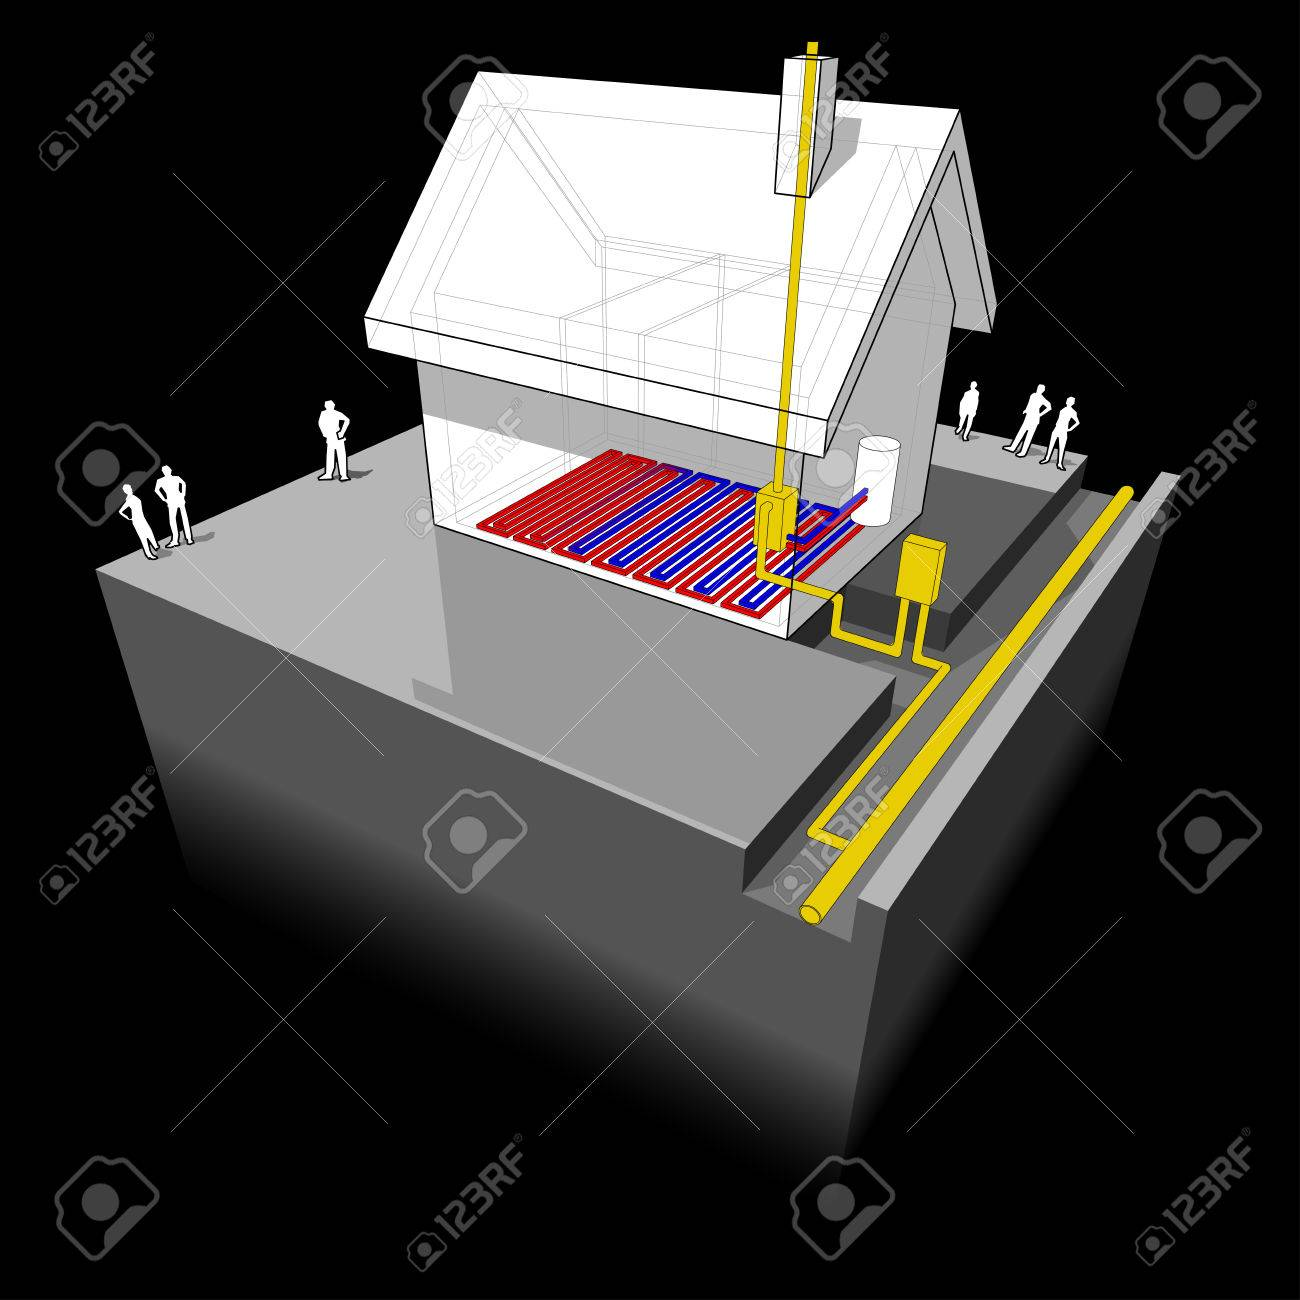 hight resolution of diagram of a detached house with underfloor heating and natural gas boiler stock vector 55657971